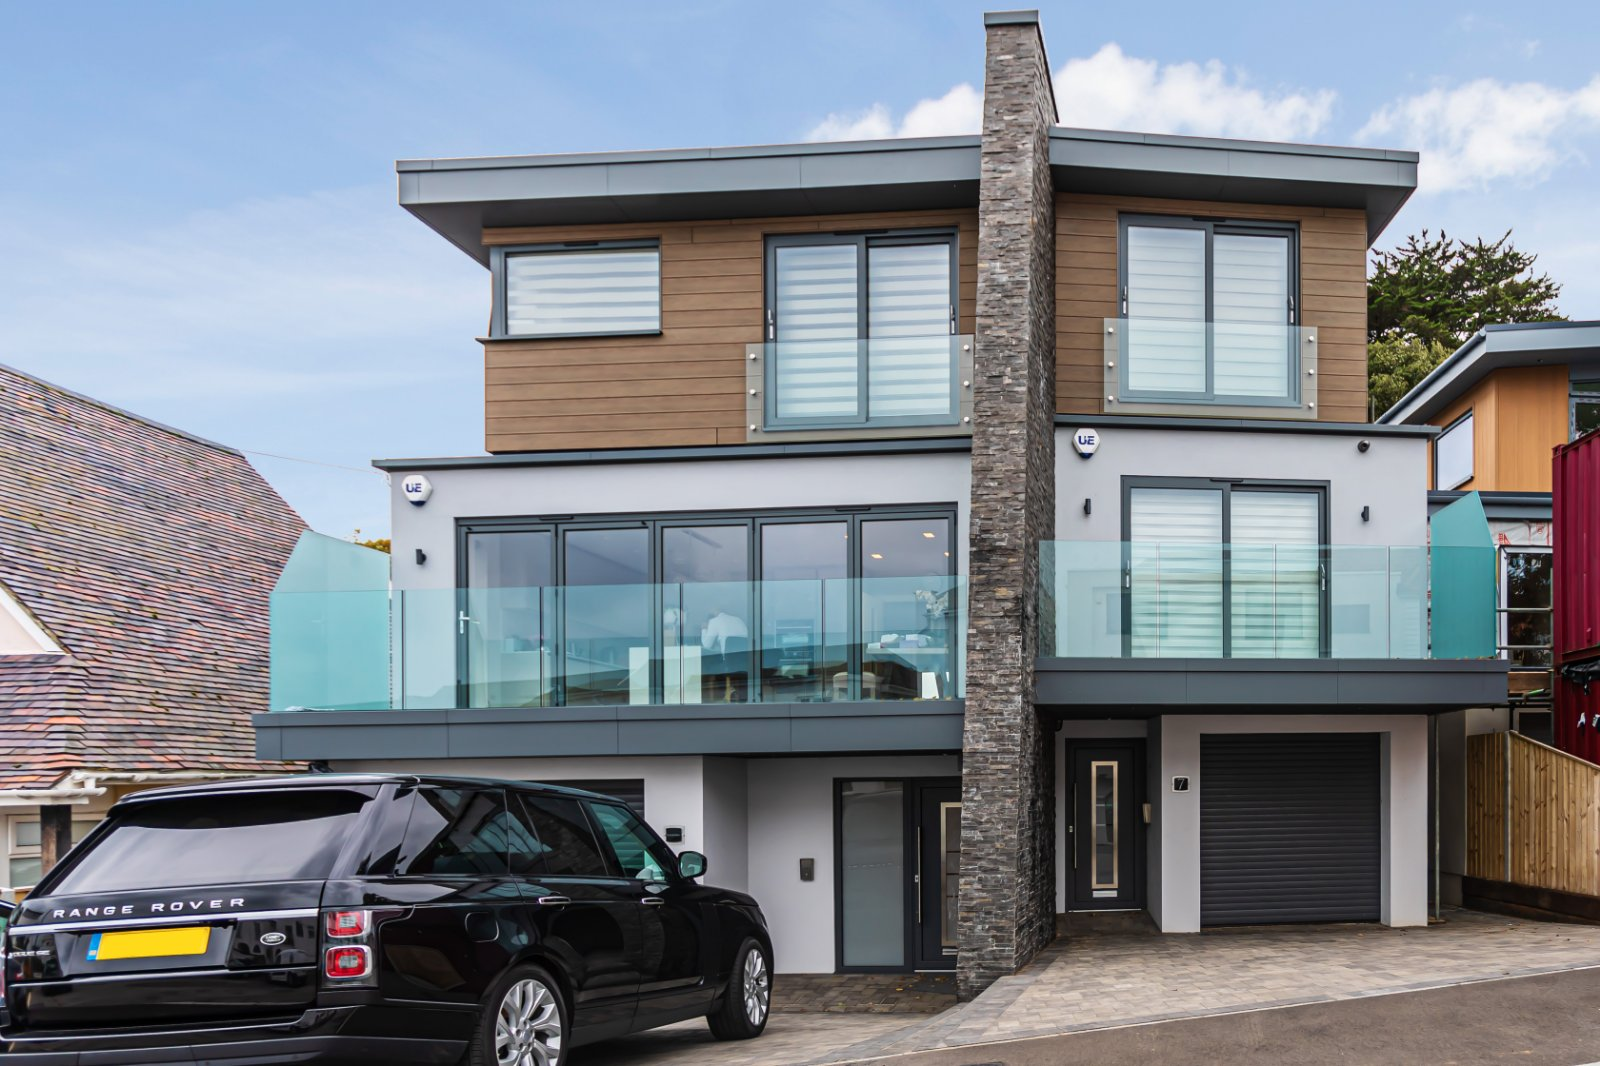 3 bed house to rent in Sandbanks 0